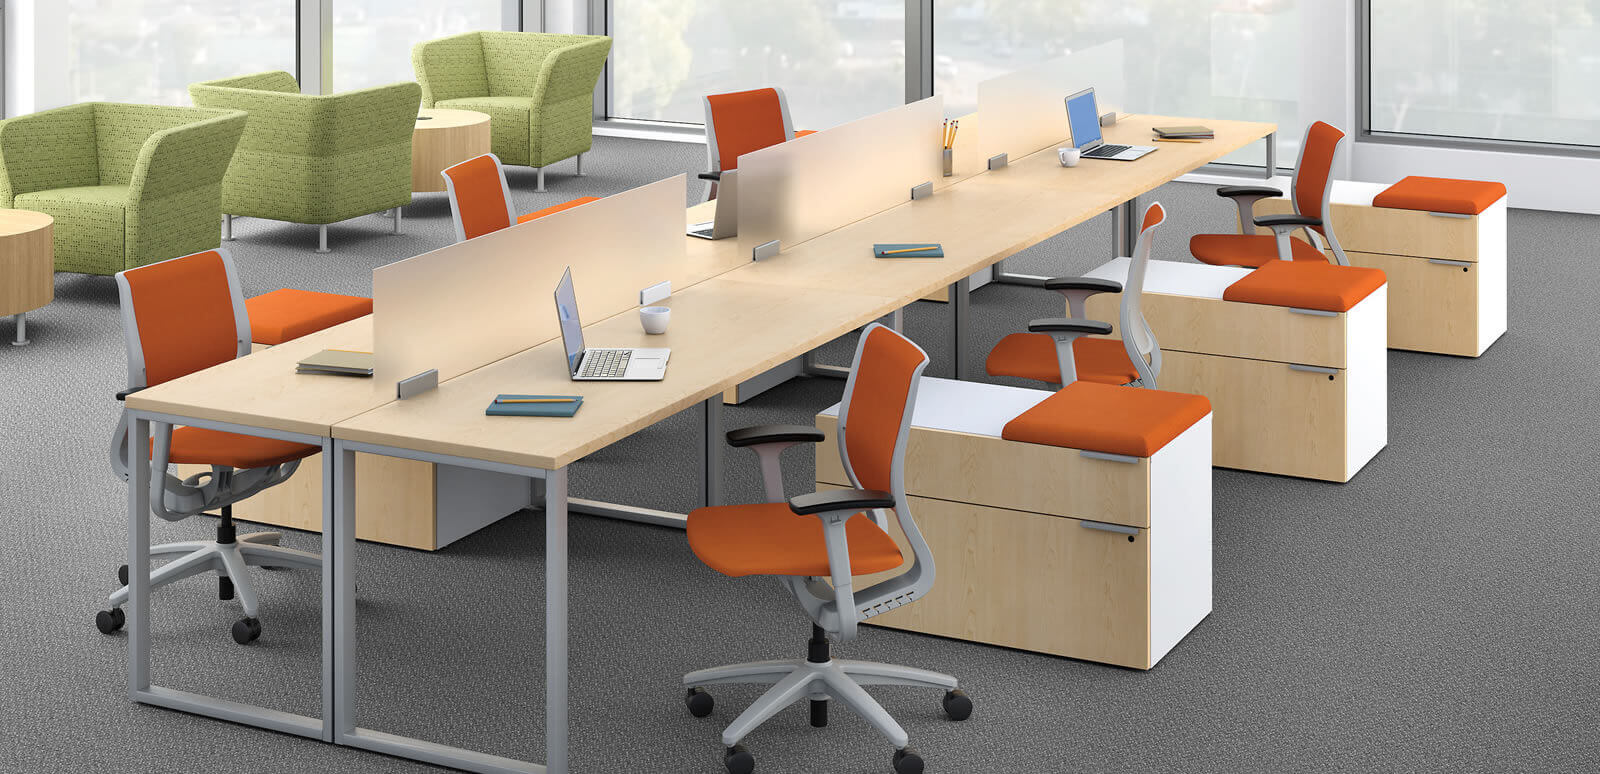 office-furniture & Used Office Furniture Houston Texas | Used Cubicles Used Office Chairs